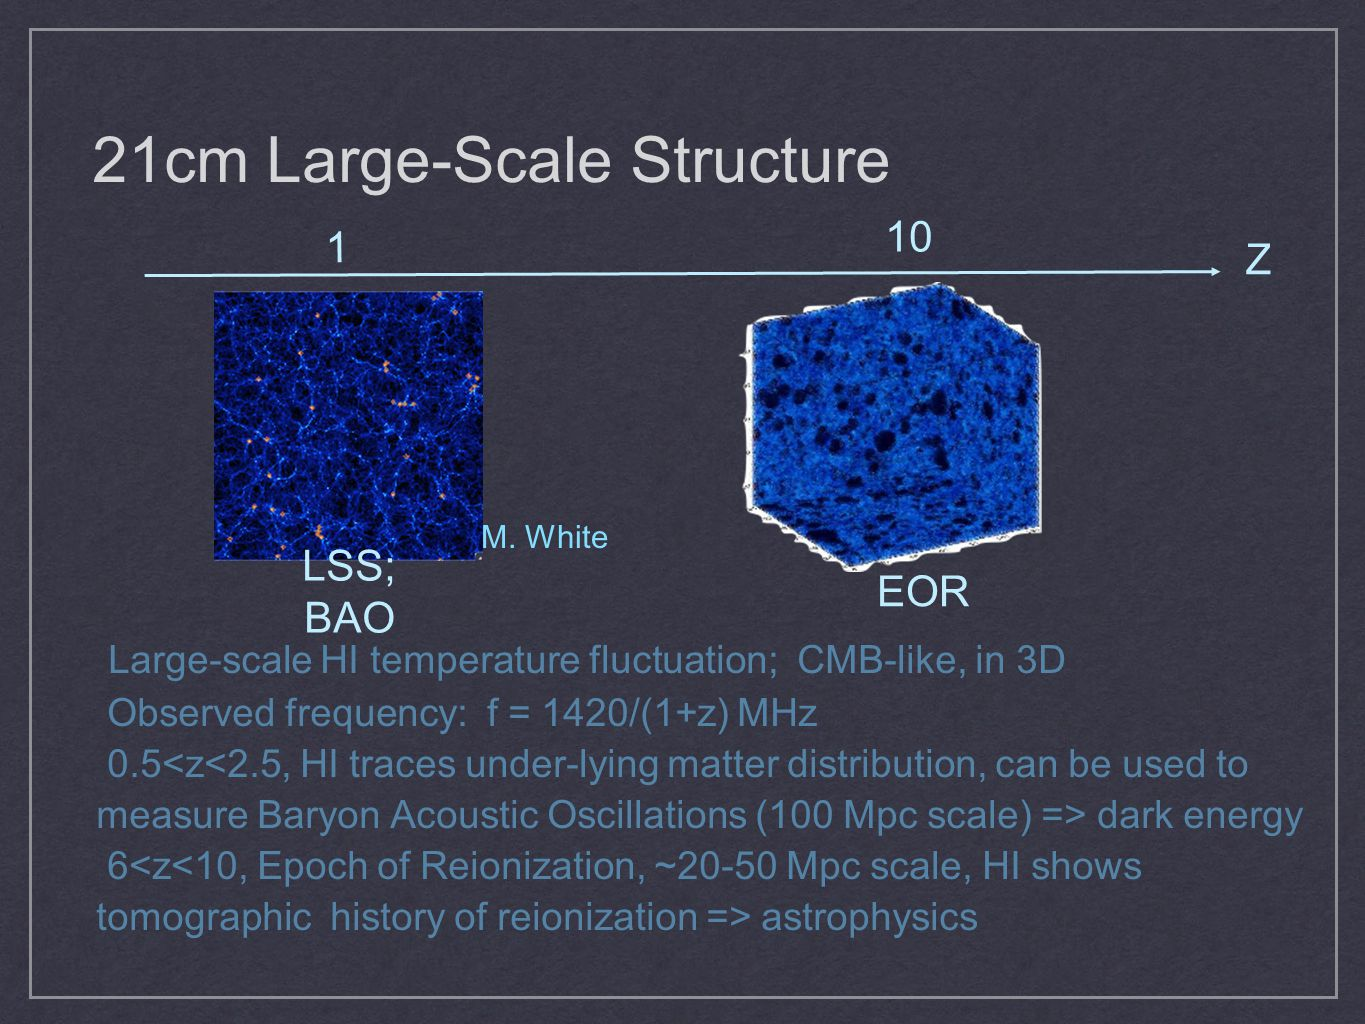 21cm Large-Scale Structure Large-scale HI temperature fluctuation; CMB-like, in 3D Observed frequency: f = 1420/(1+z) MHz 0.5 dark energy 6 astrophysi